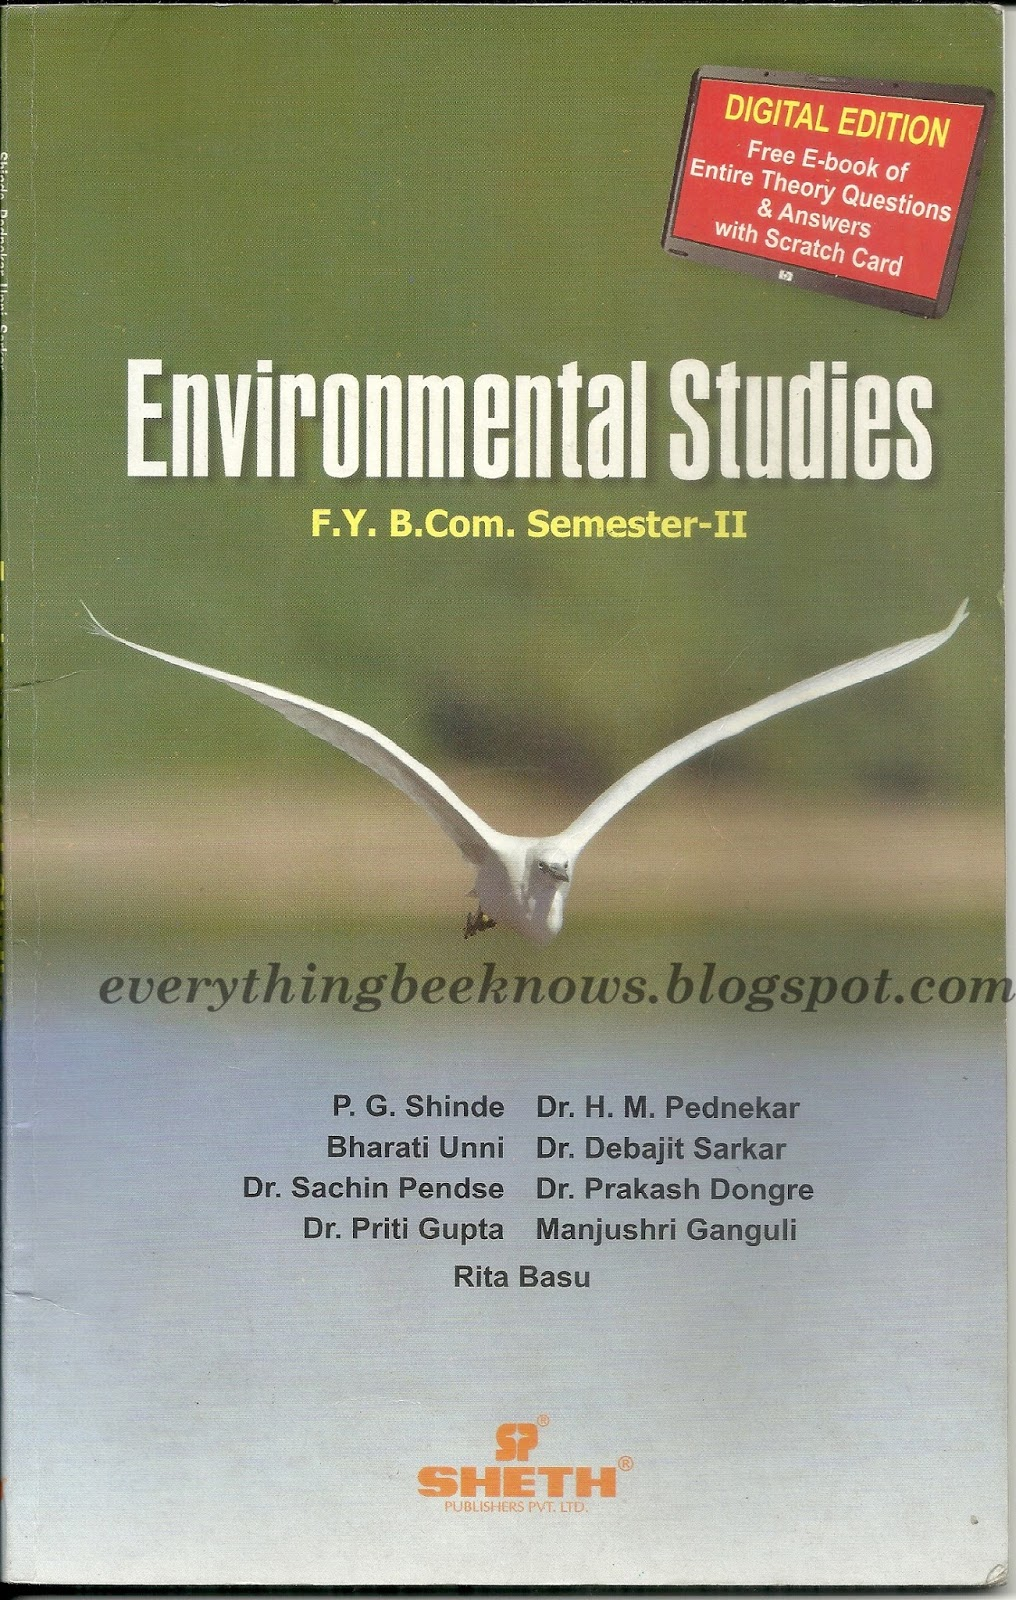 Books to Refer for Bcom Second Semester / Books Recommendation for